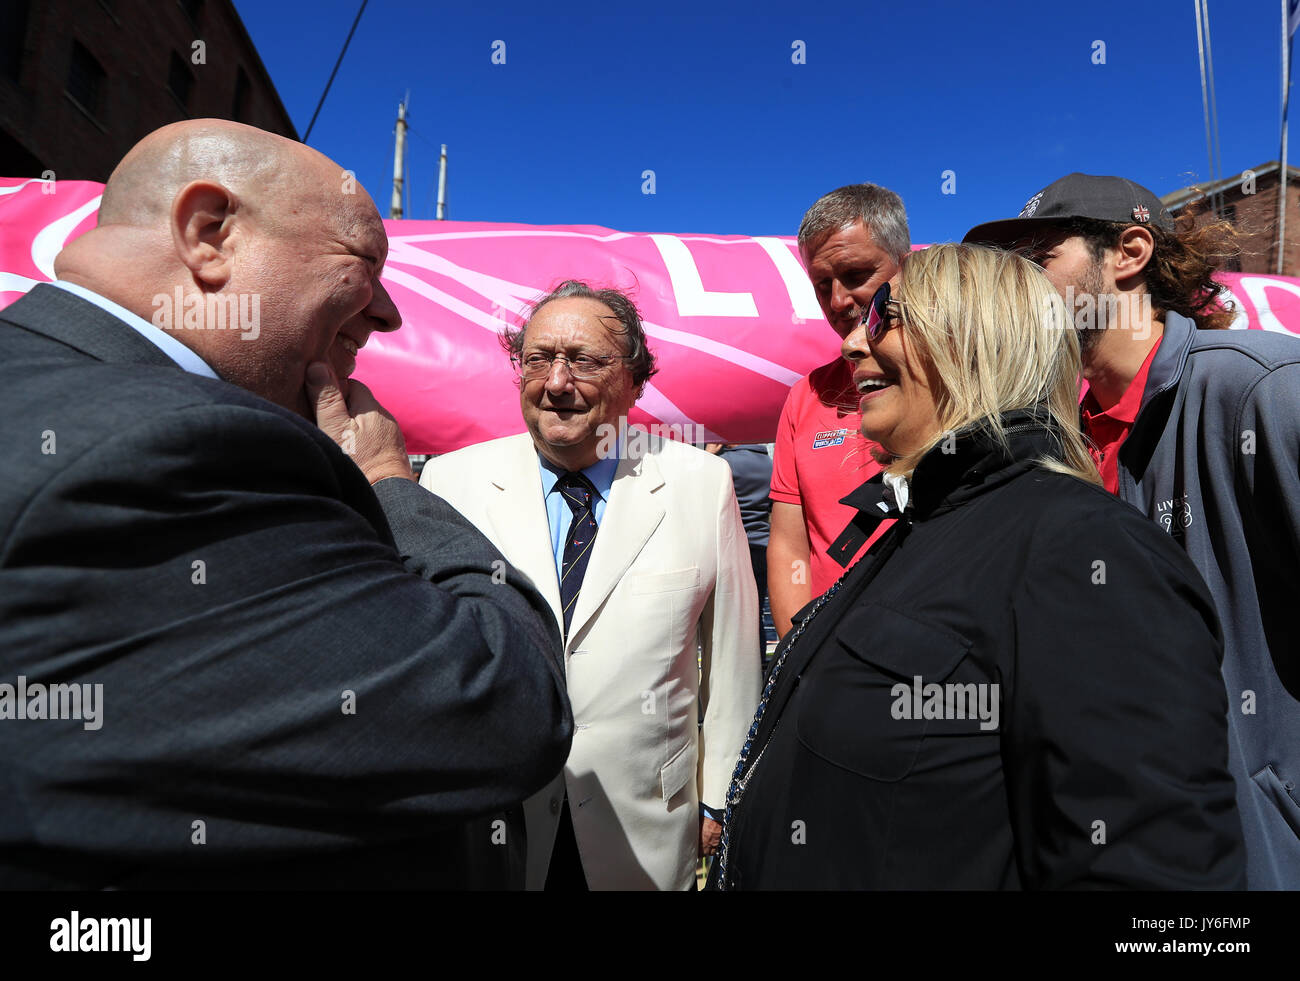 Mayor of Liverpool Joe Anderson and guests at Albert Docks, Liverpool ahead of this Sunday's start of the Clipper Round the World yacht race. PRESS ASSOCIATION Photo. Picture date: Friday August 18, 2017. Photo credit should read: Tim Goode/PA Wire - Stock Image